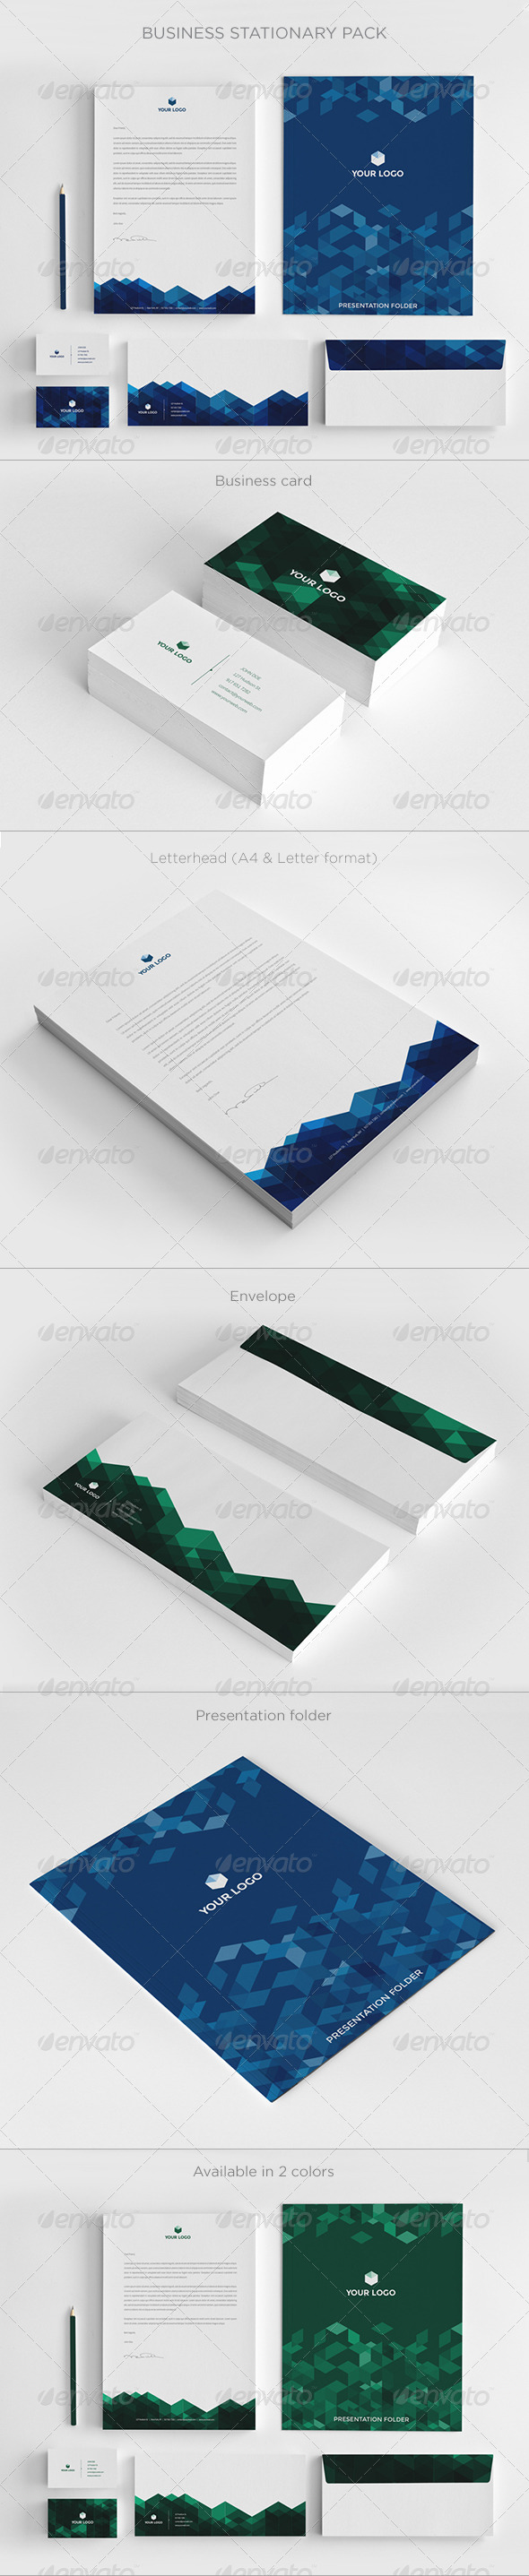 GraphicRiver Business Stationary Pack II 6380354